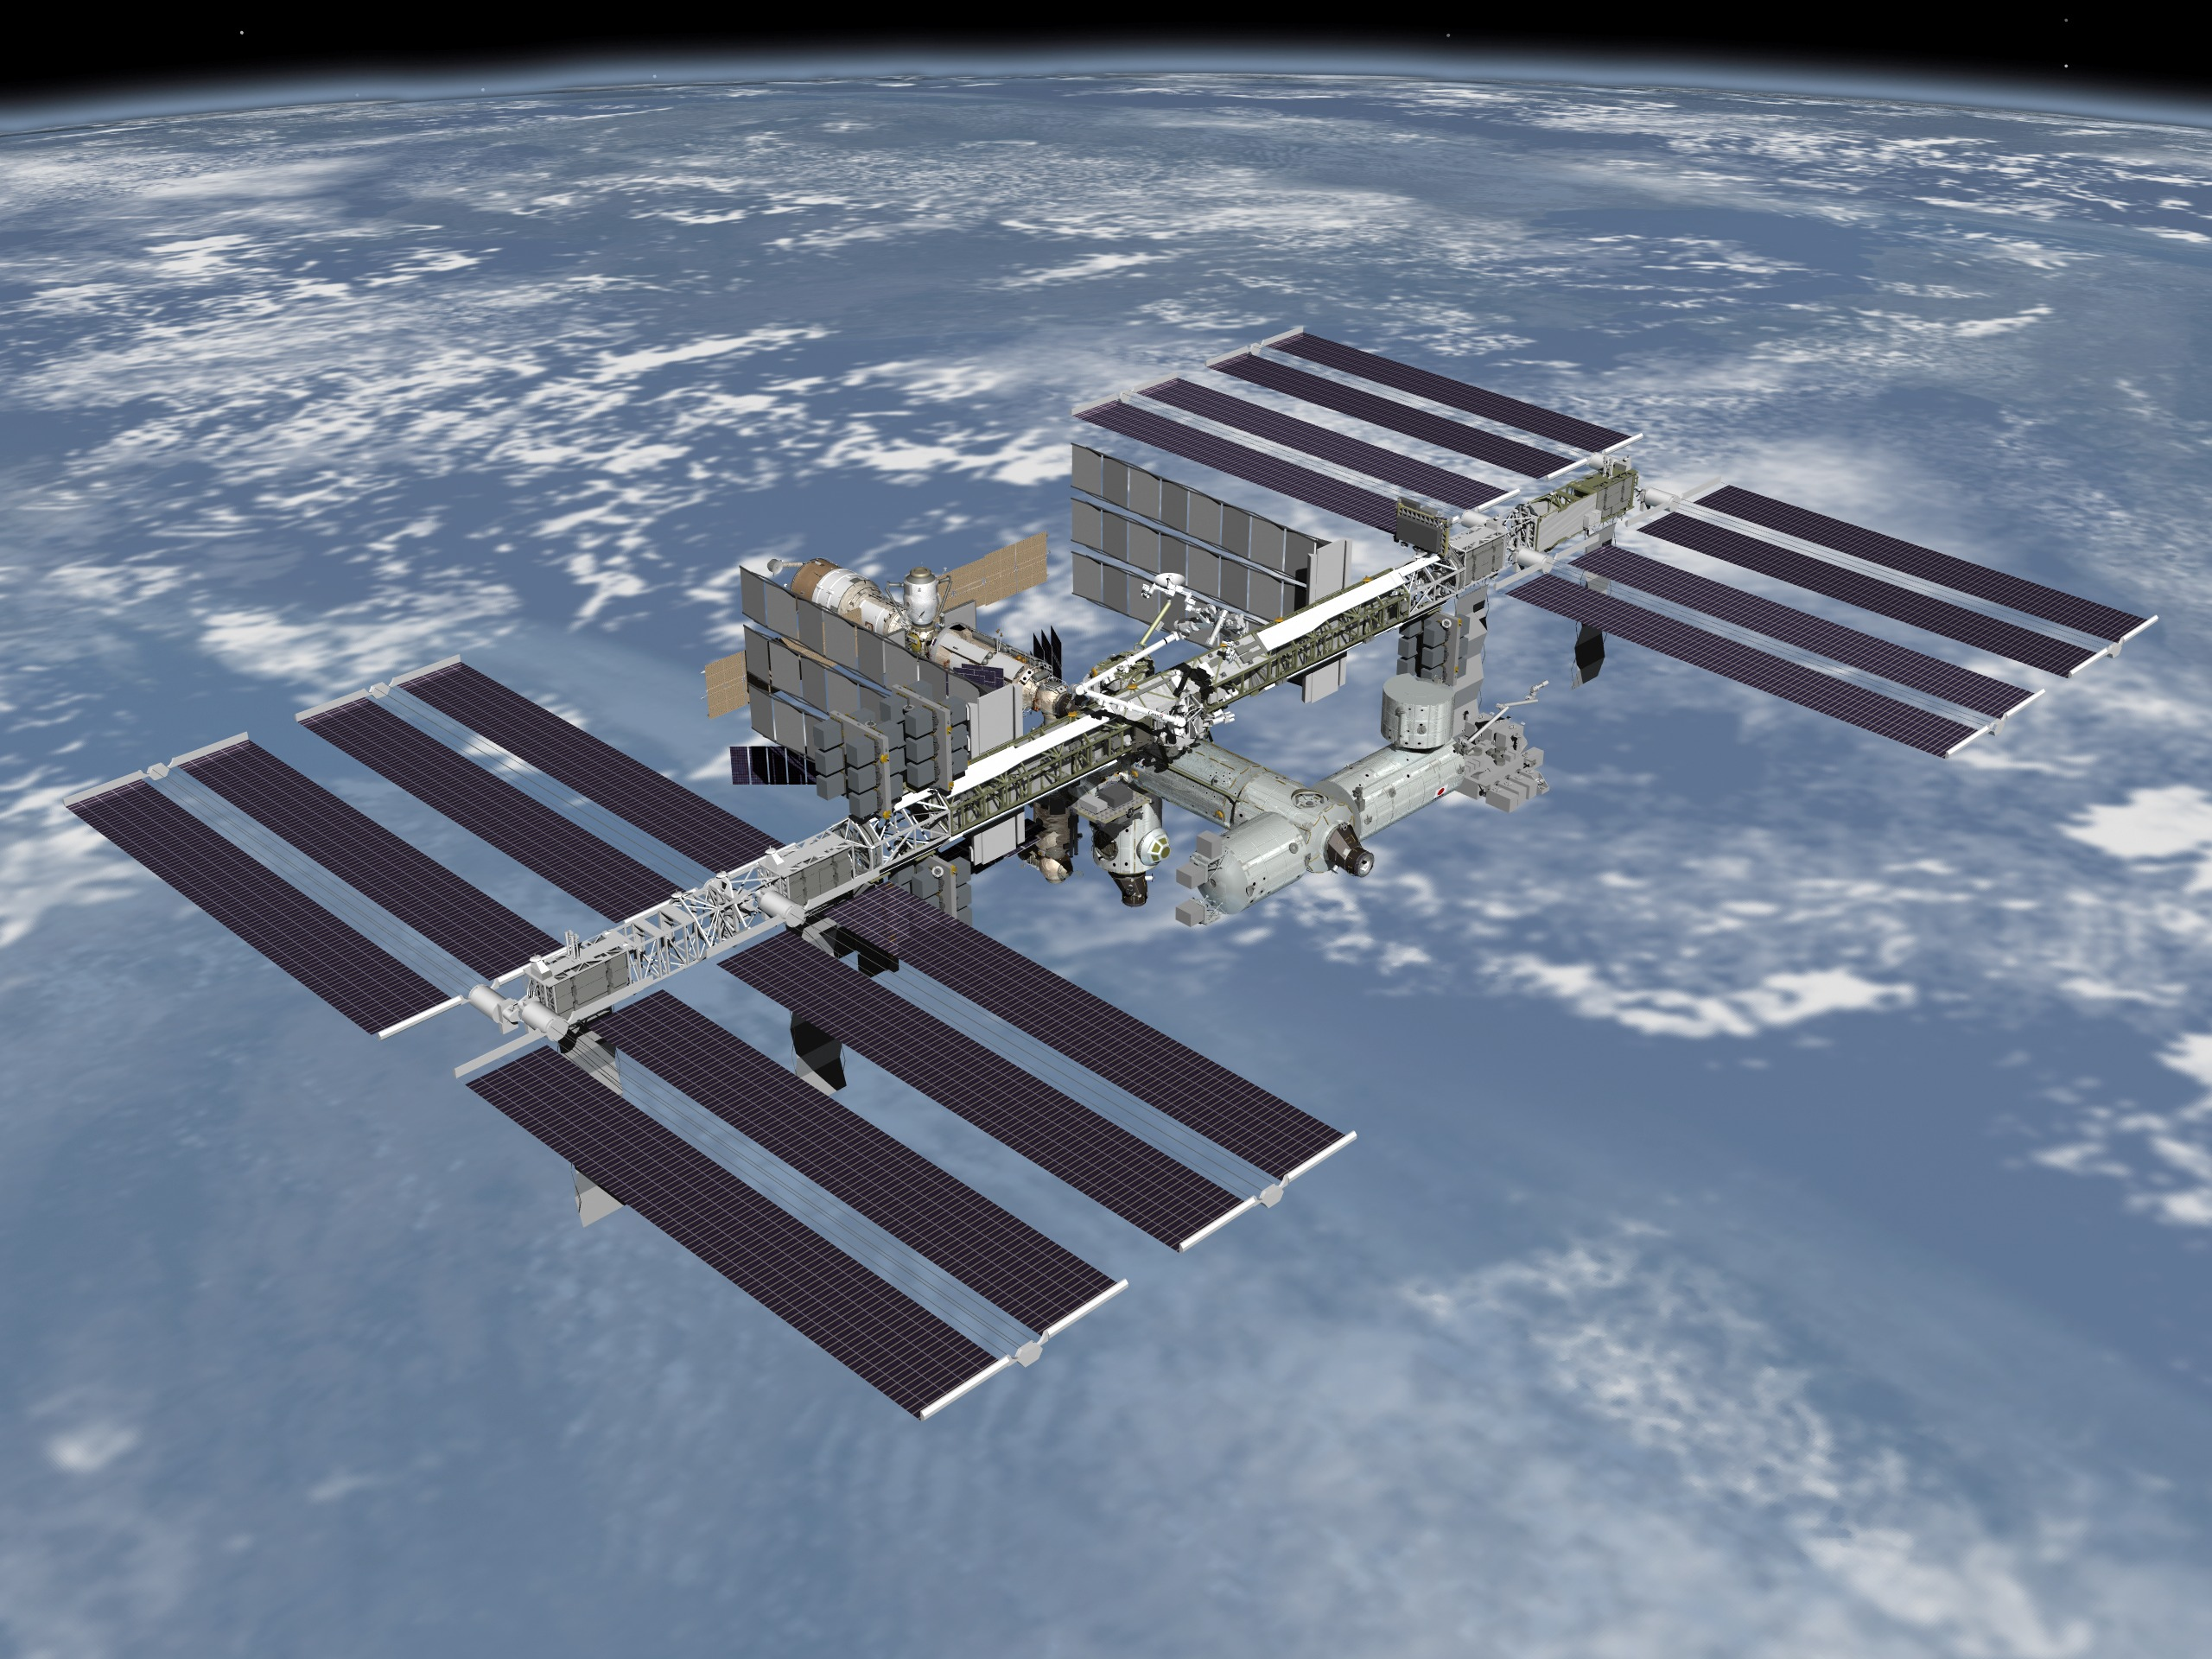 us nasa space station-#21